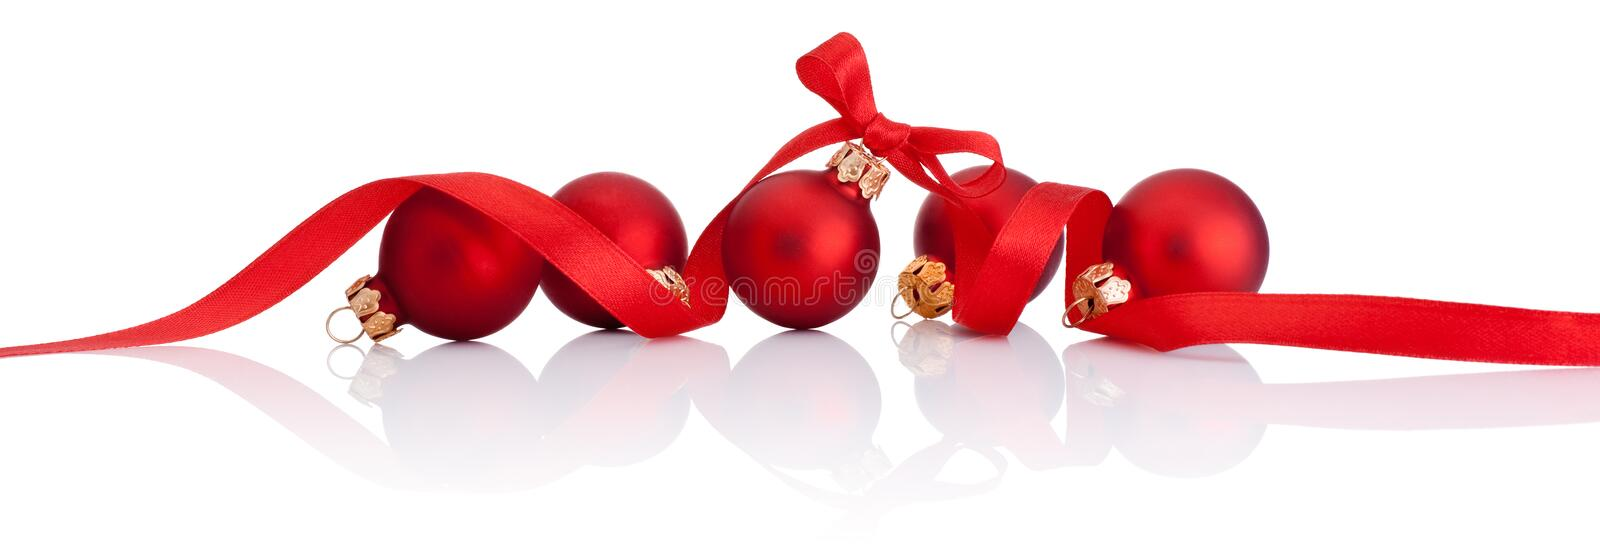 Bolas vermelhas do Natal com a curva da fita isolada no fundo branco fotos de stock royalty free